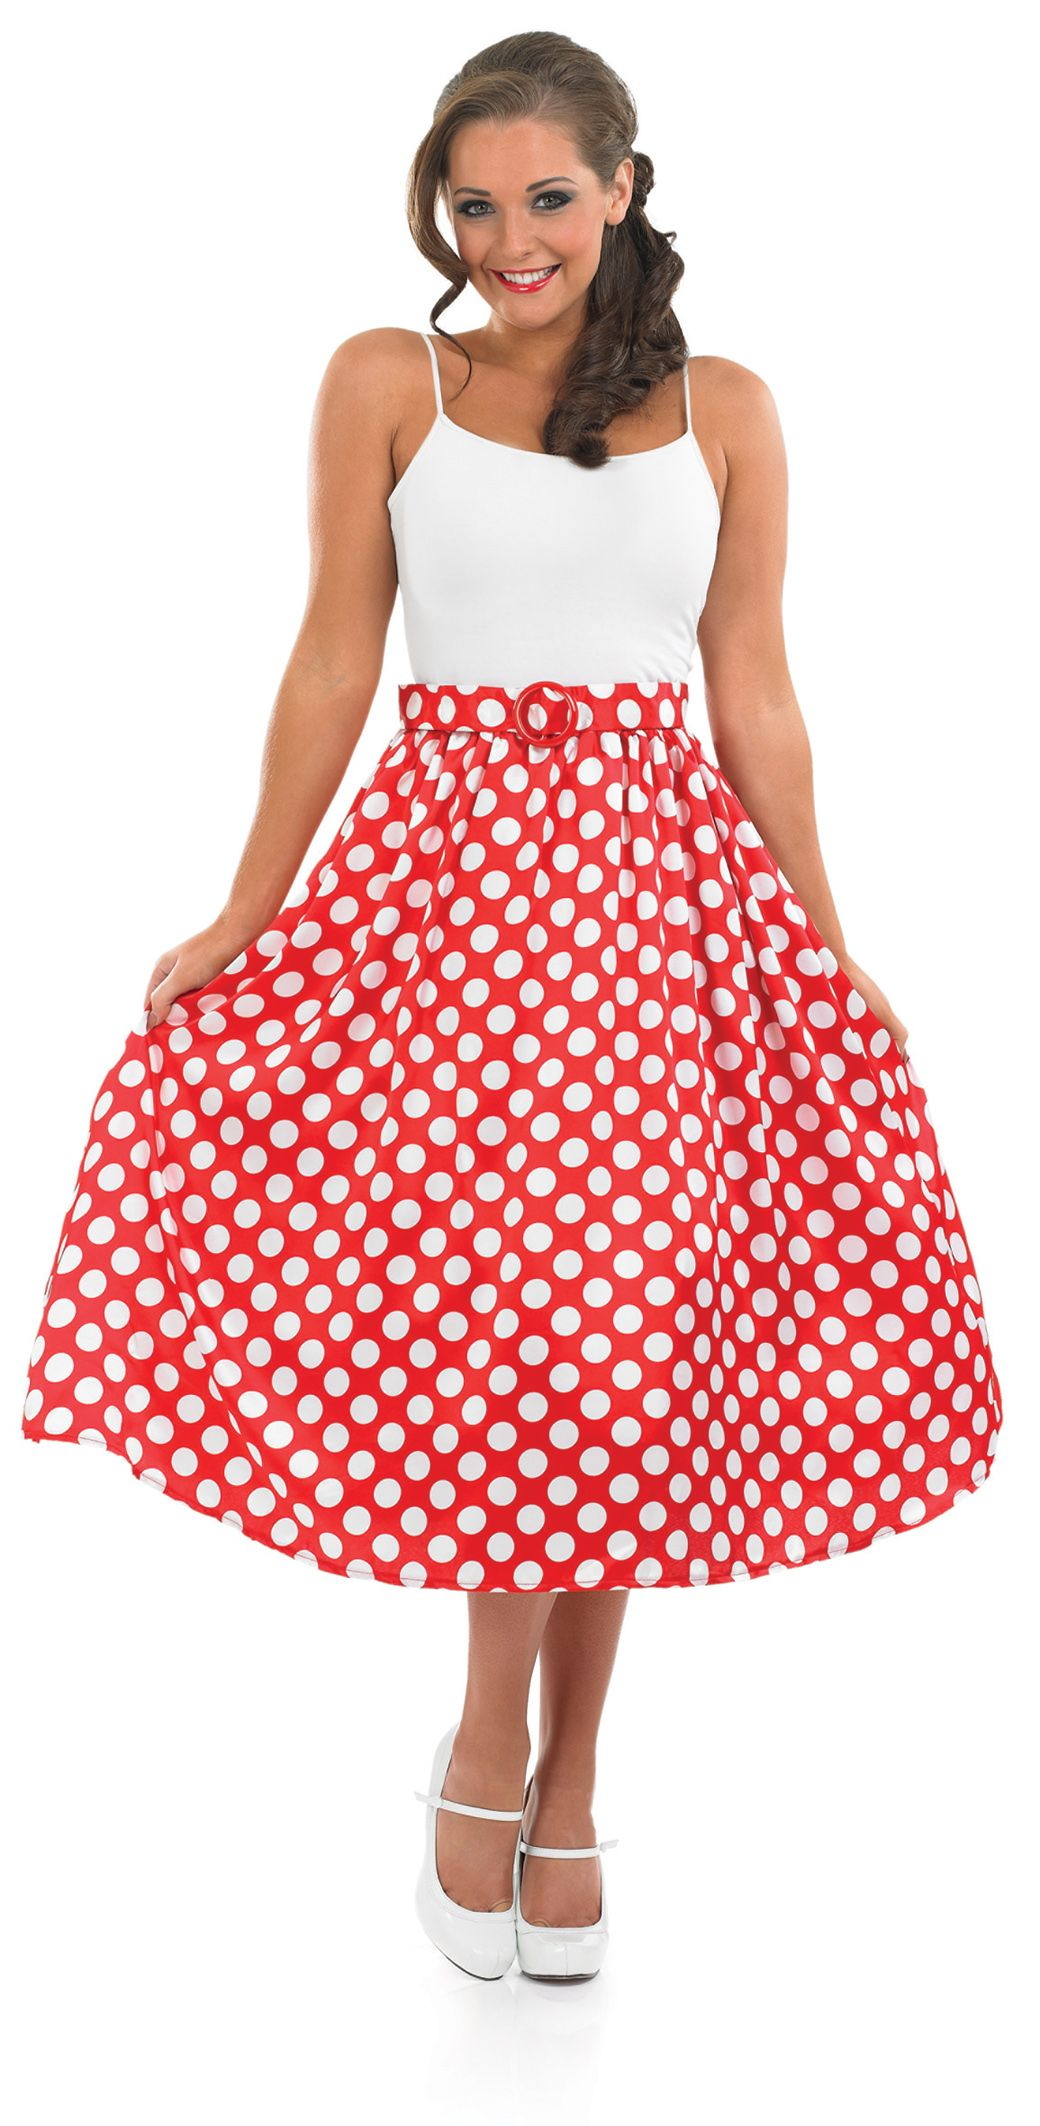 Red Polka Dot Skirt 50\'s Rock n Roll Ladies 1950s Fancy Dress ...